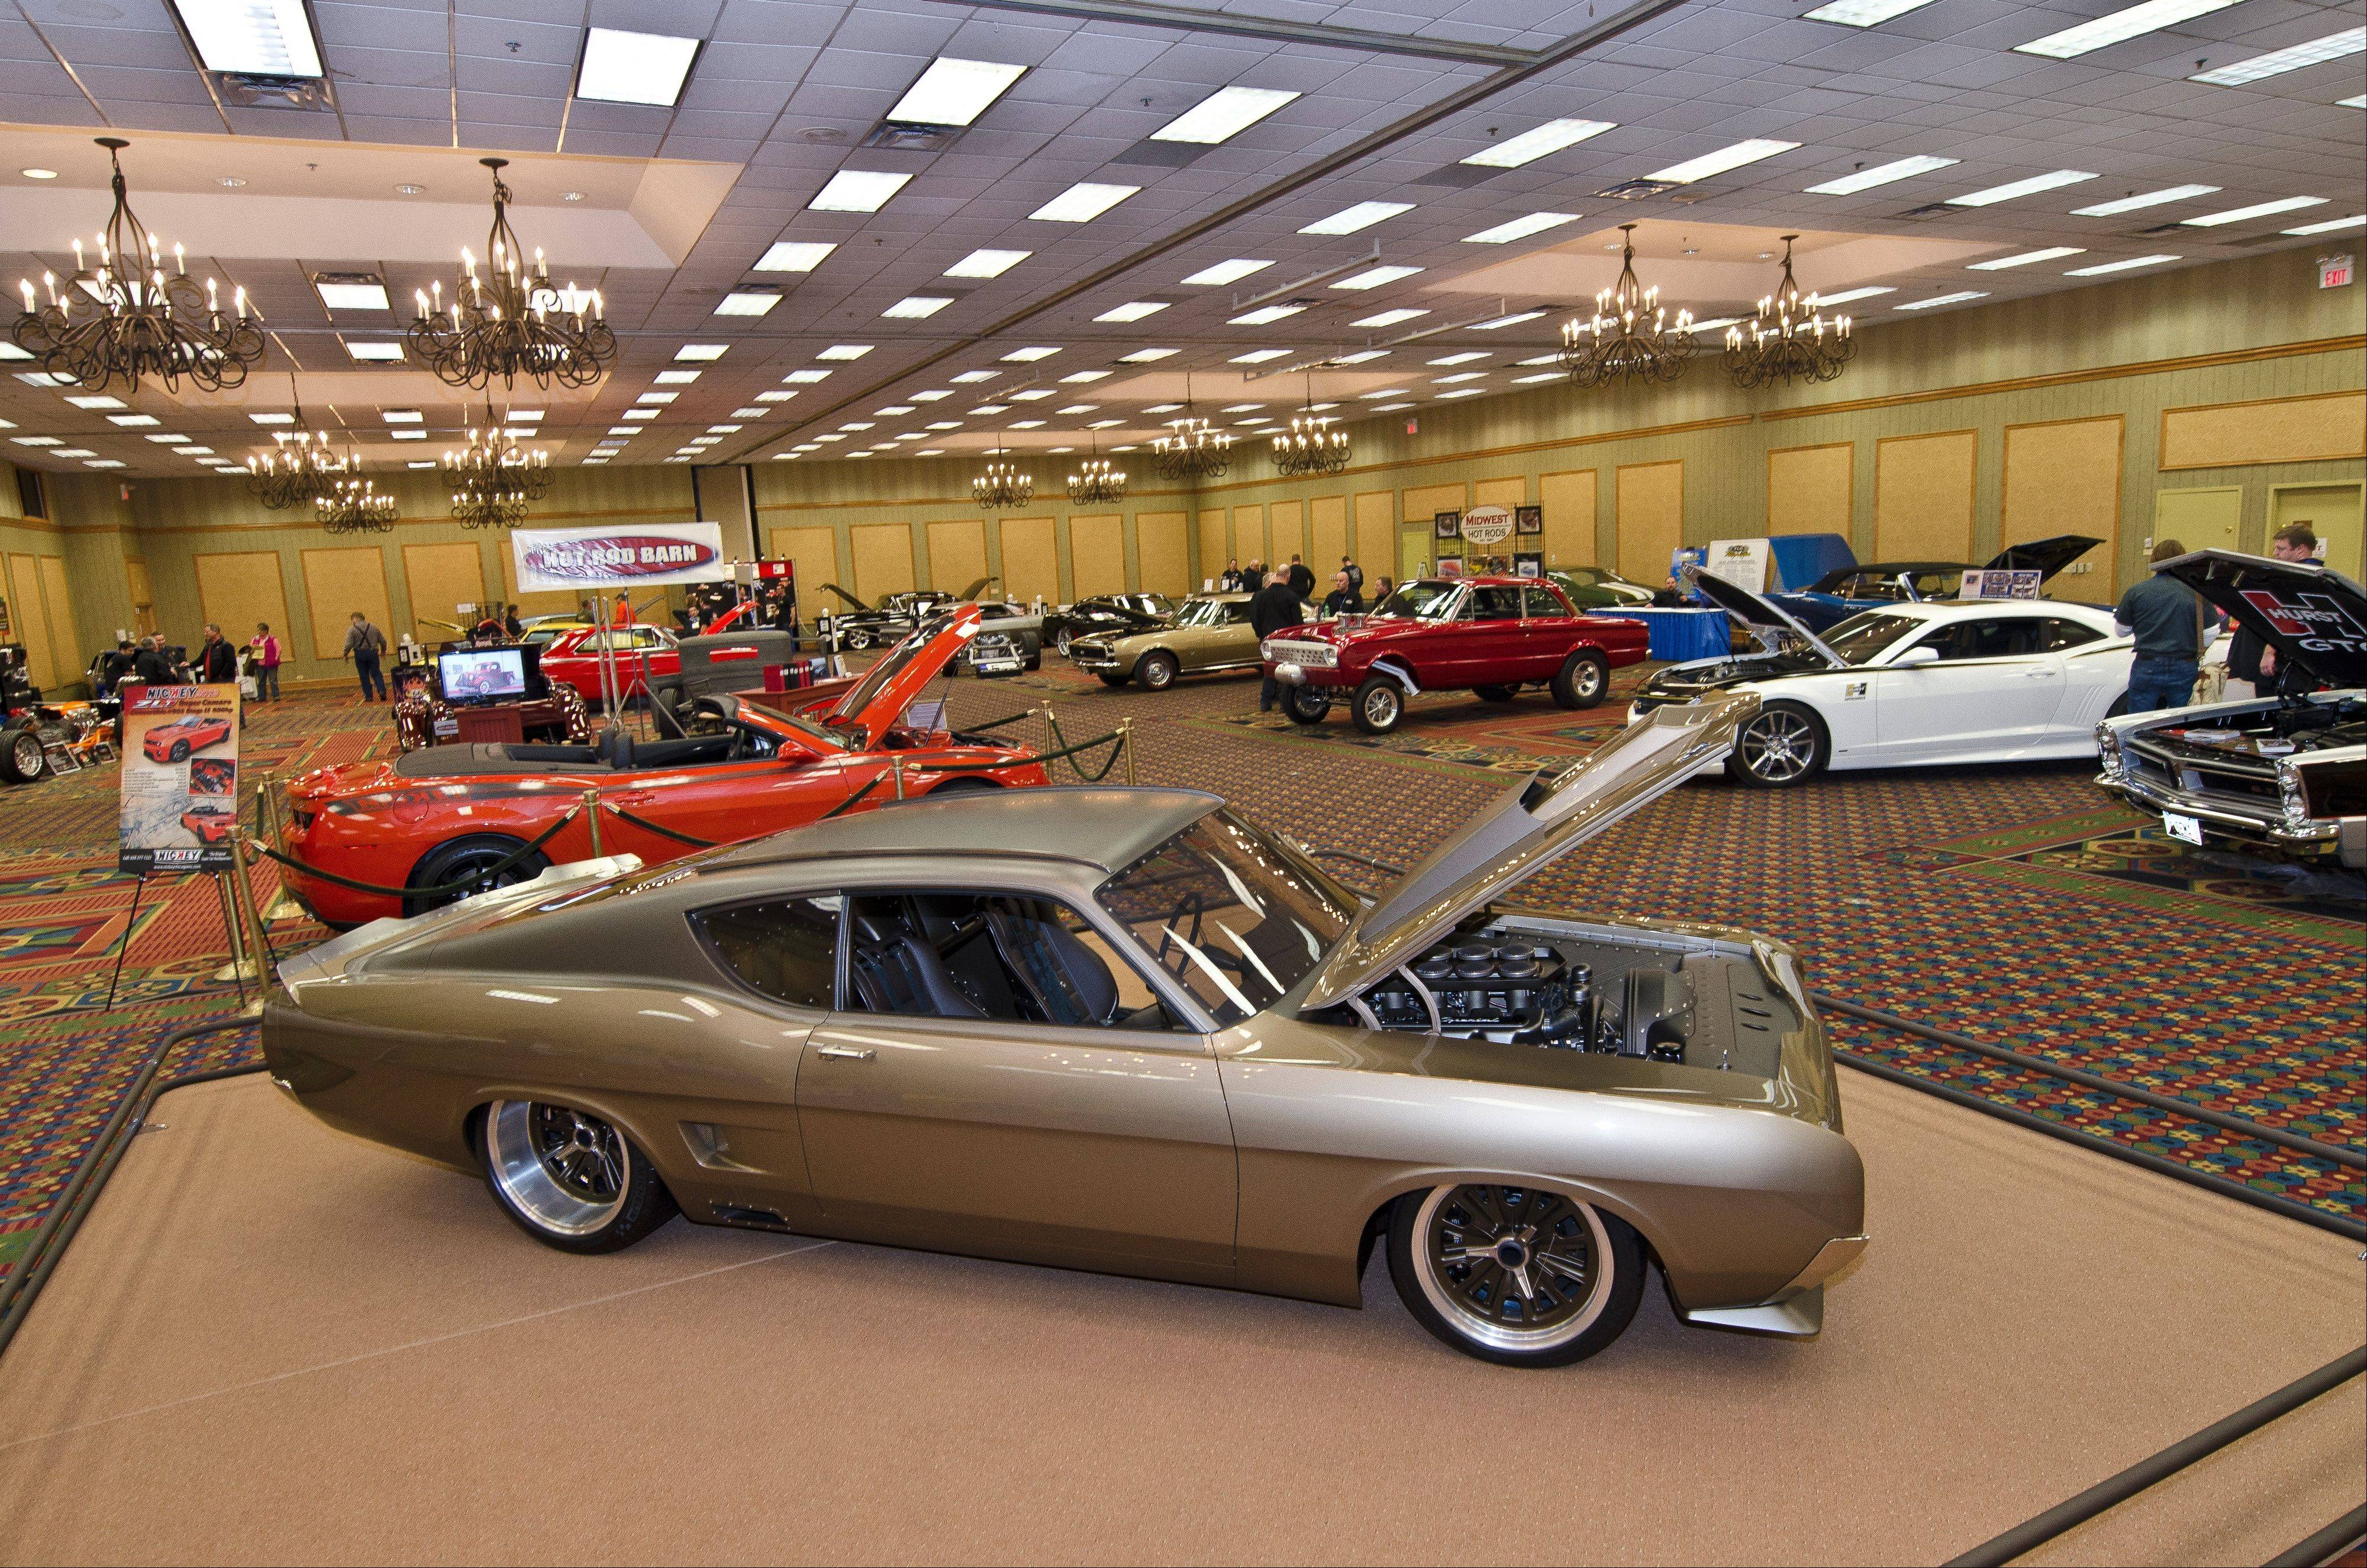 The sixth annual Race and Performance Expo was held last weekend at Pheasant Run Resort in St. Charles.